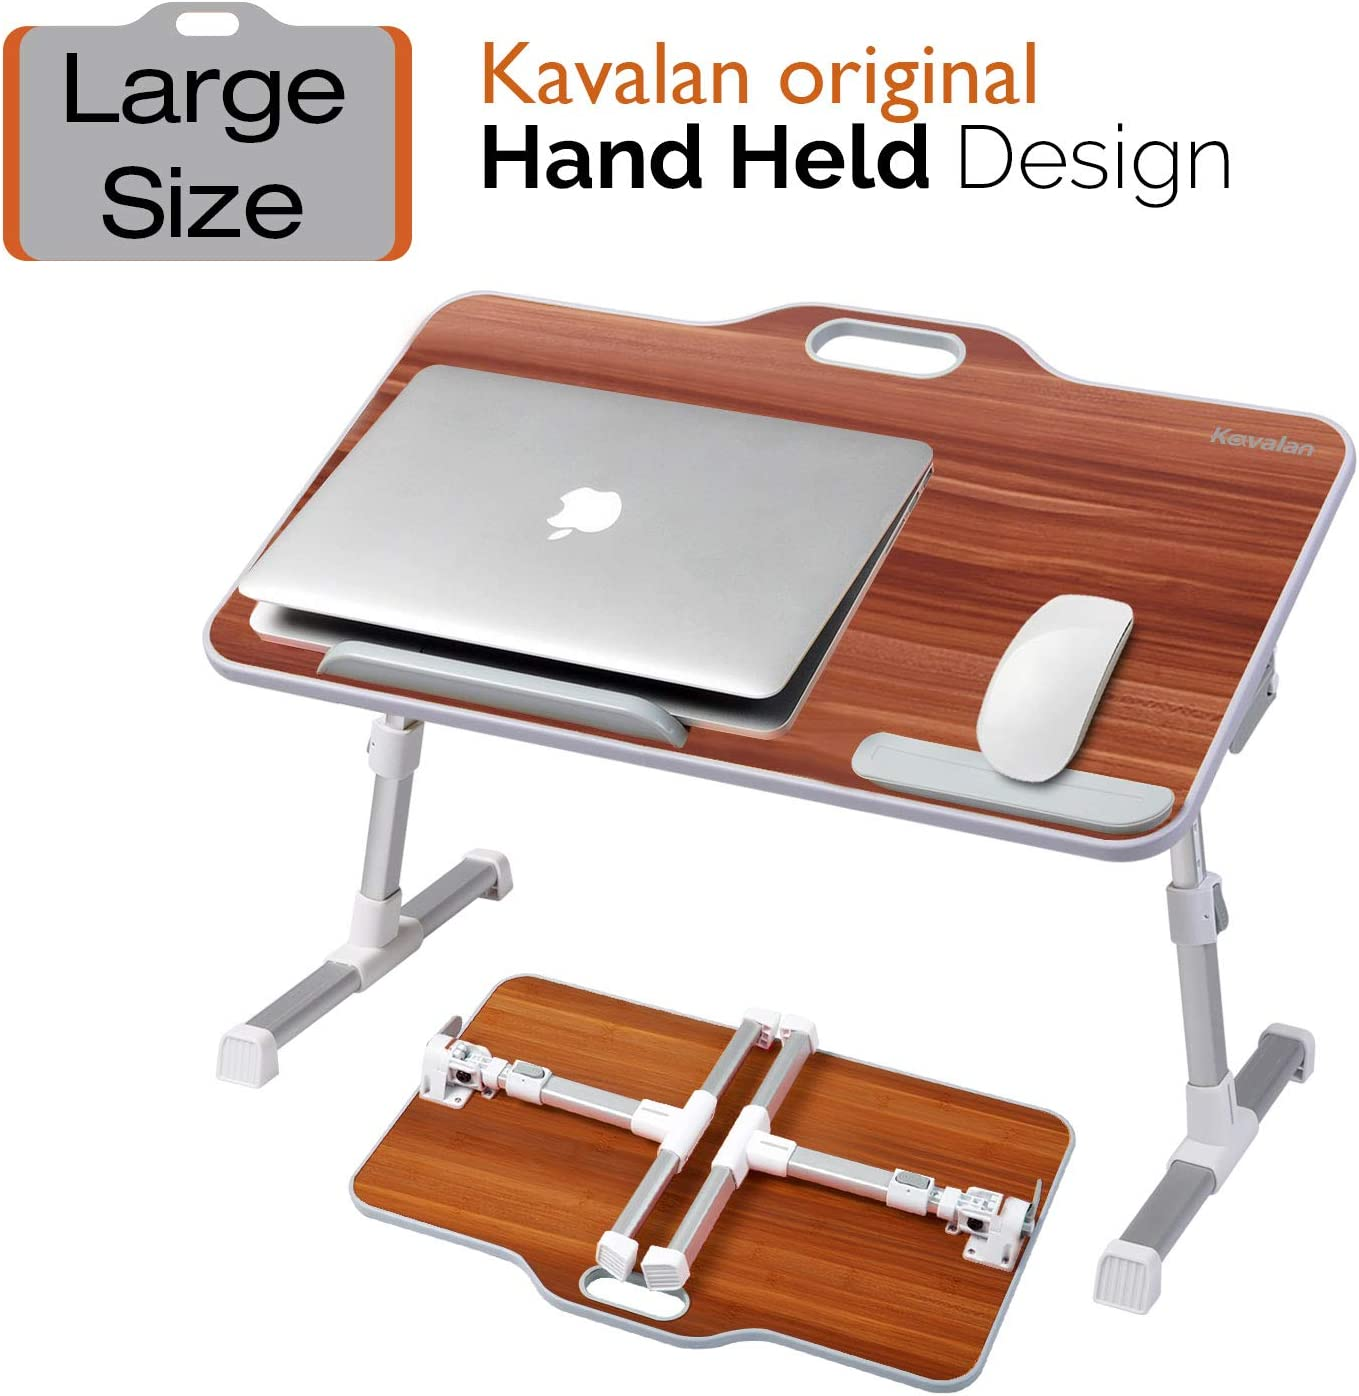 Kavalan Large Size Portable Laptop Table with Handle, Height & Angle Adjustable Sit and Stand Desk, Bed & Breakfast Table Tray, Foldable Notebook Stand Holder for Sofa Couch - American Cherry